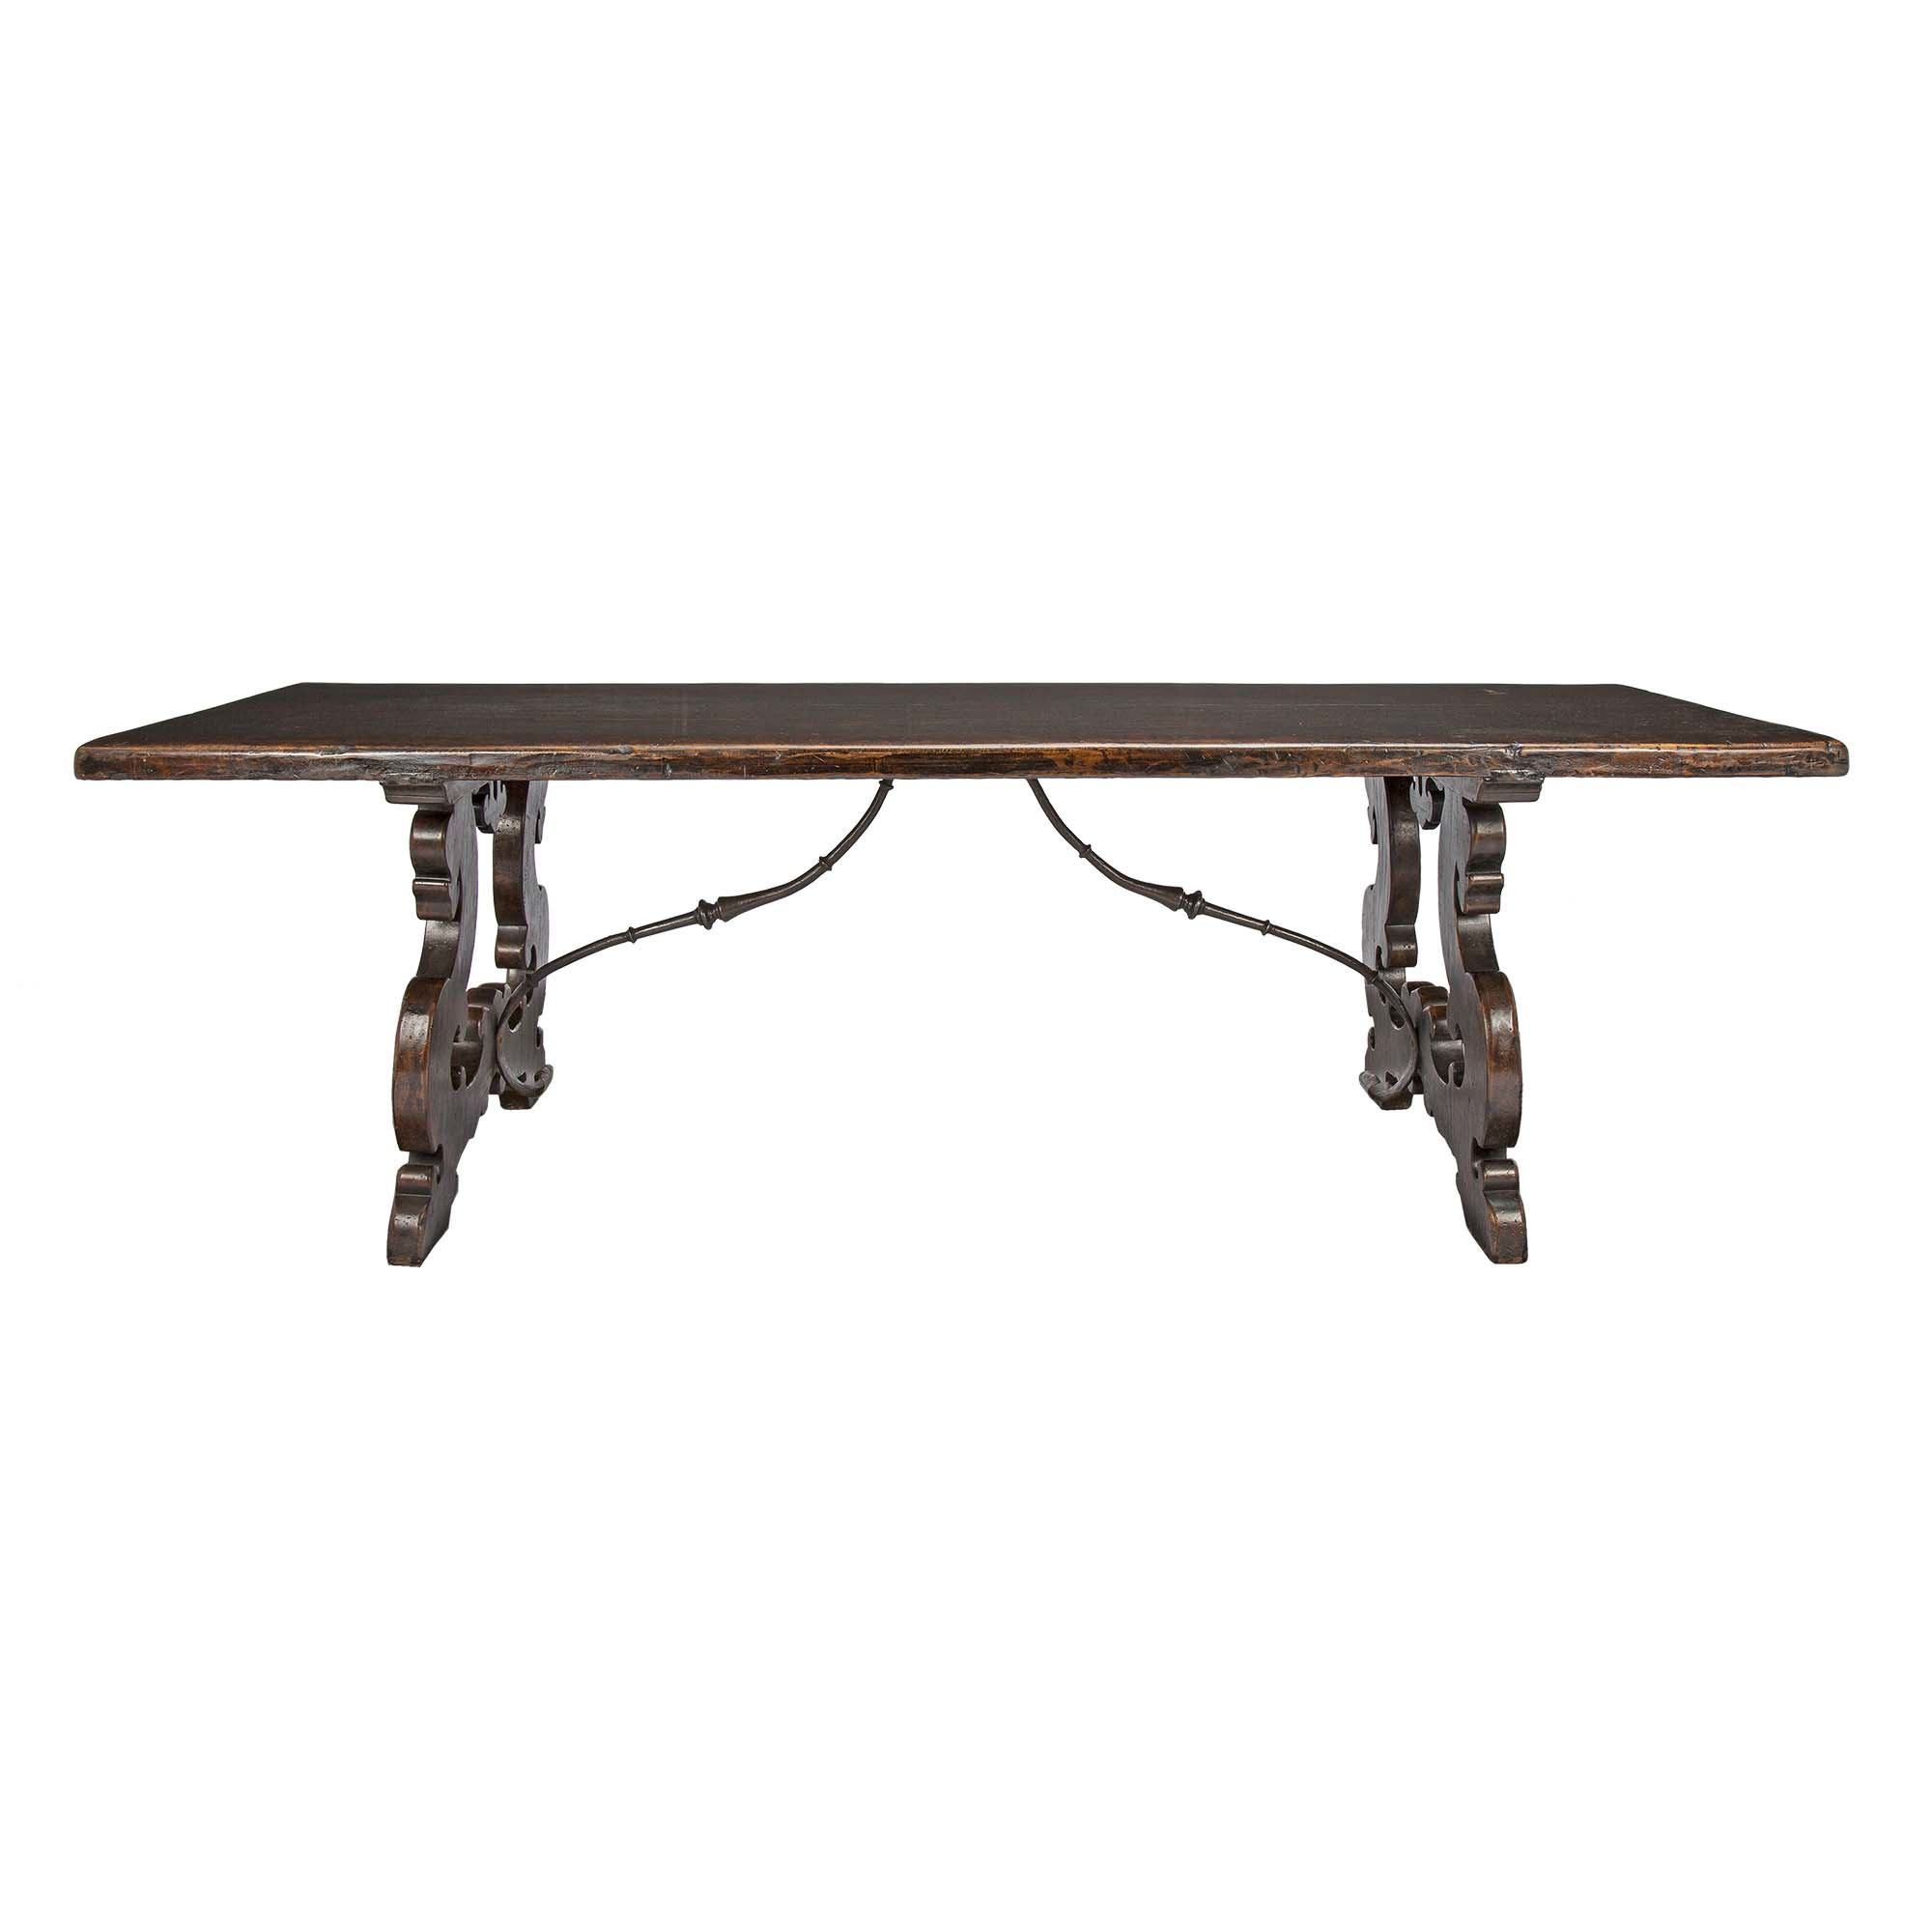 An Italian 18th Century Solid Walnut Trestle Table